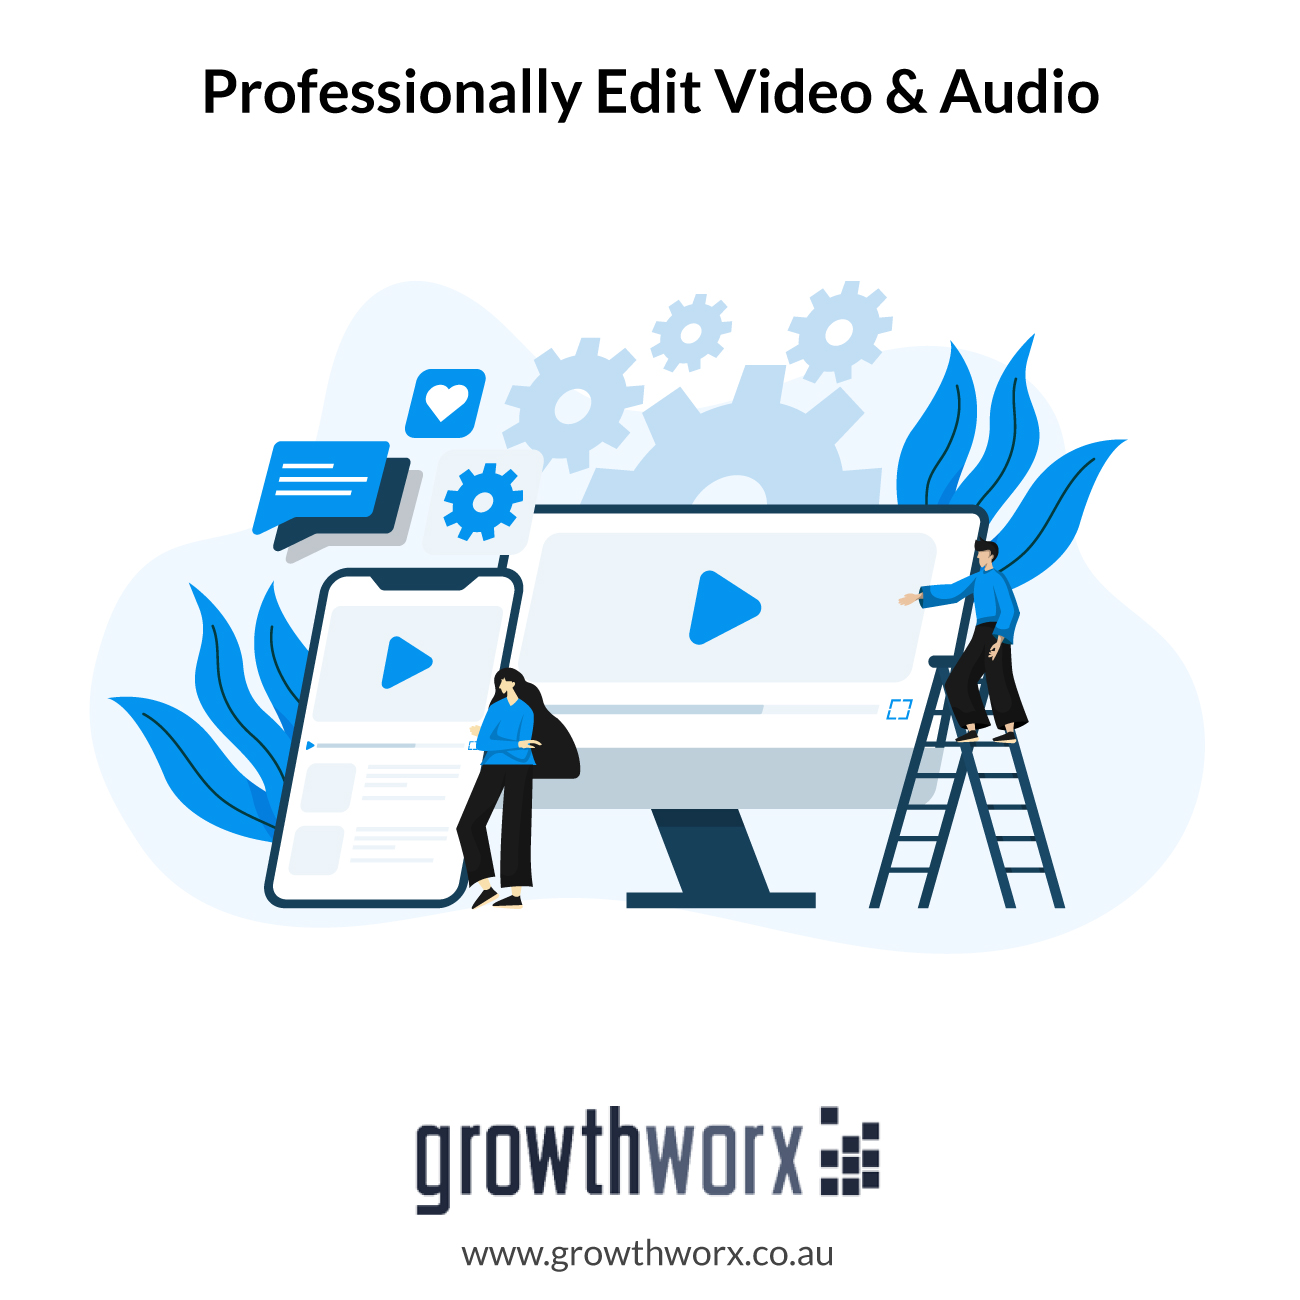 I will professionally edit your video and audio 1